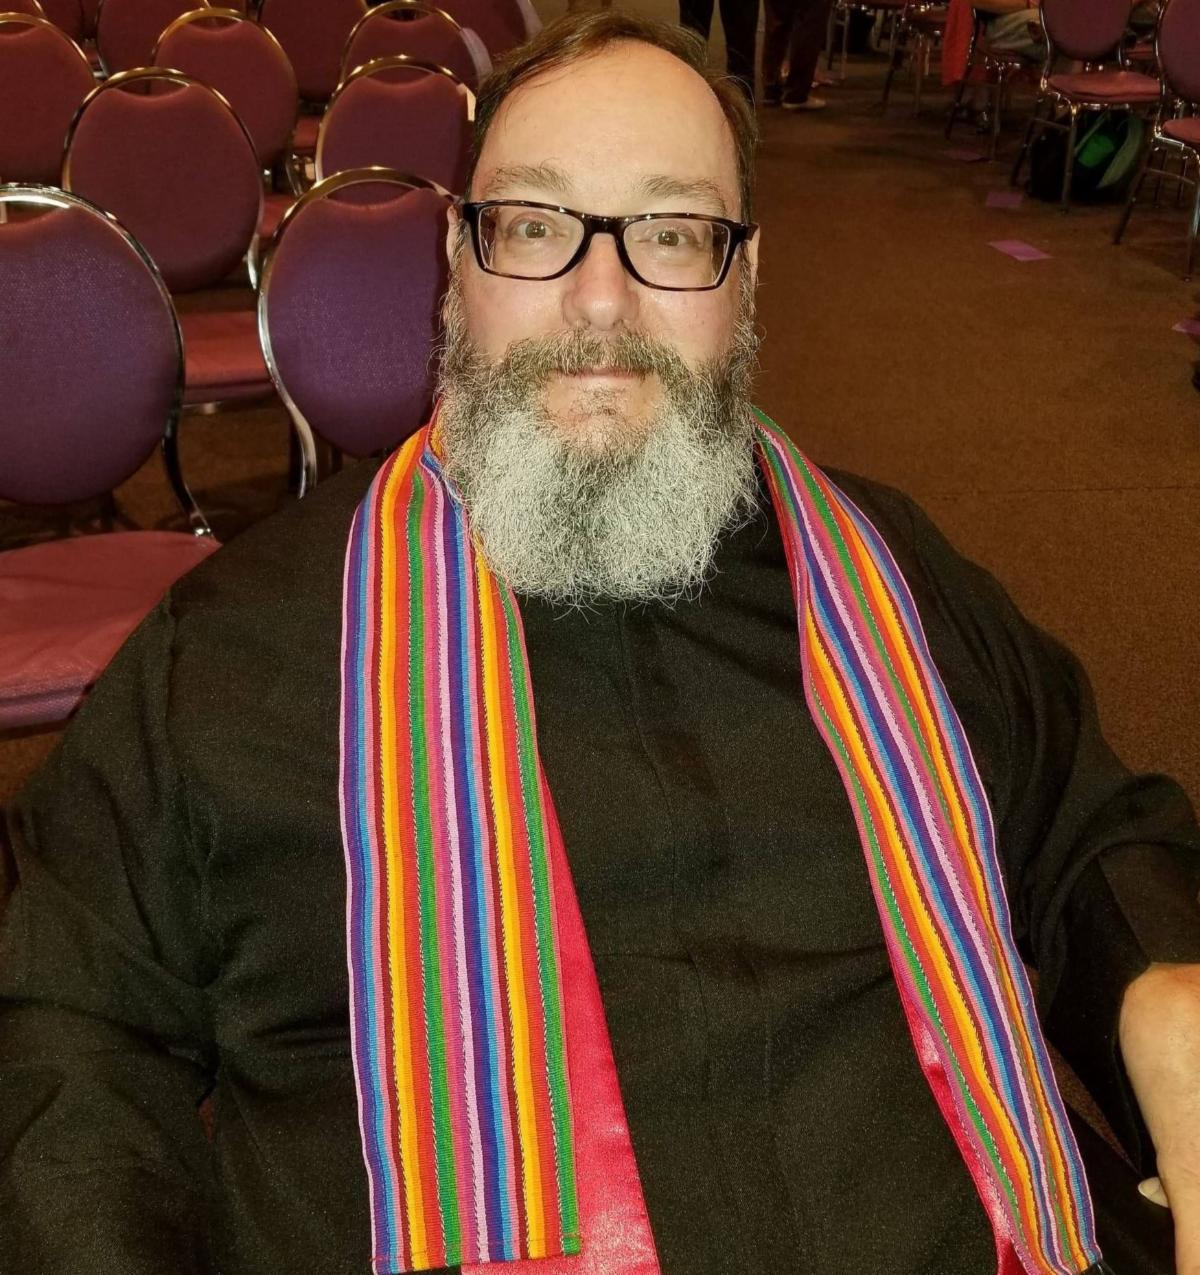 Chris sits in his wheelchair_ wearing a black clerical robe and rainbow stole.  He wears glasses and has a moustache and graying beard. Rows of empty chairs are in the background.